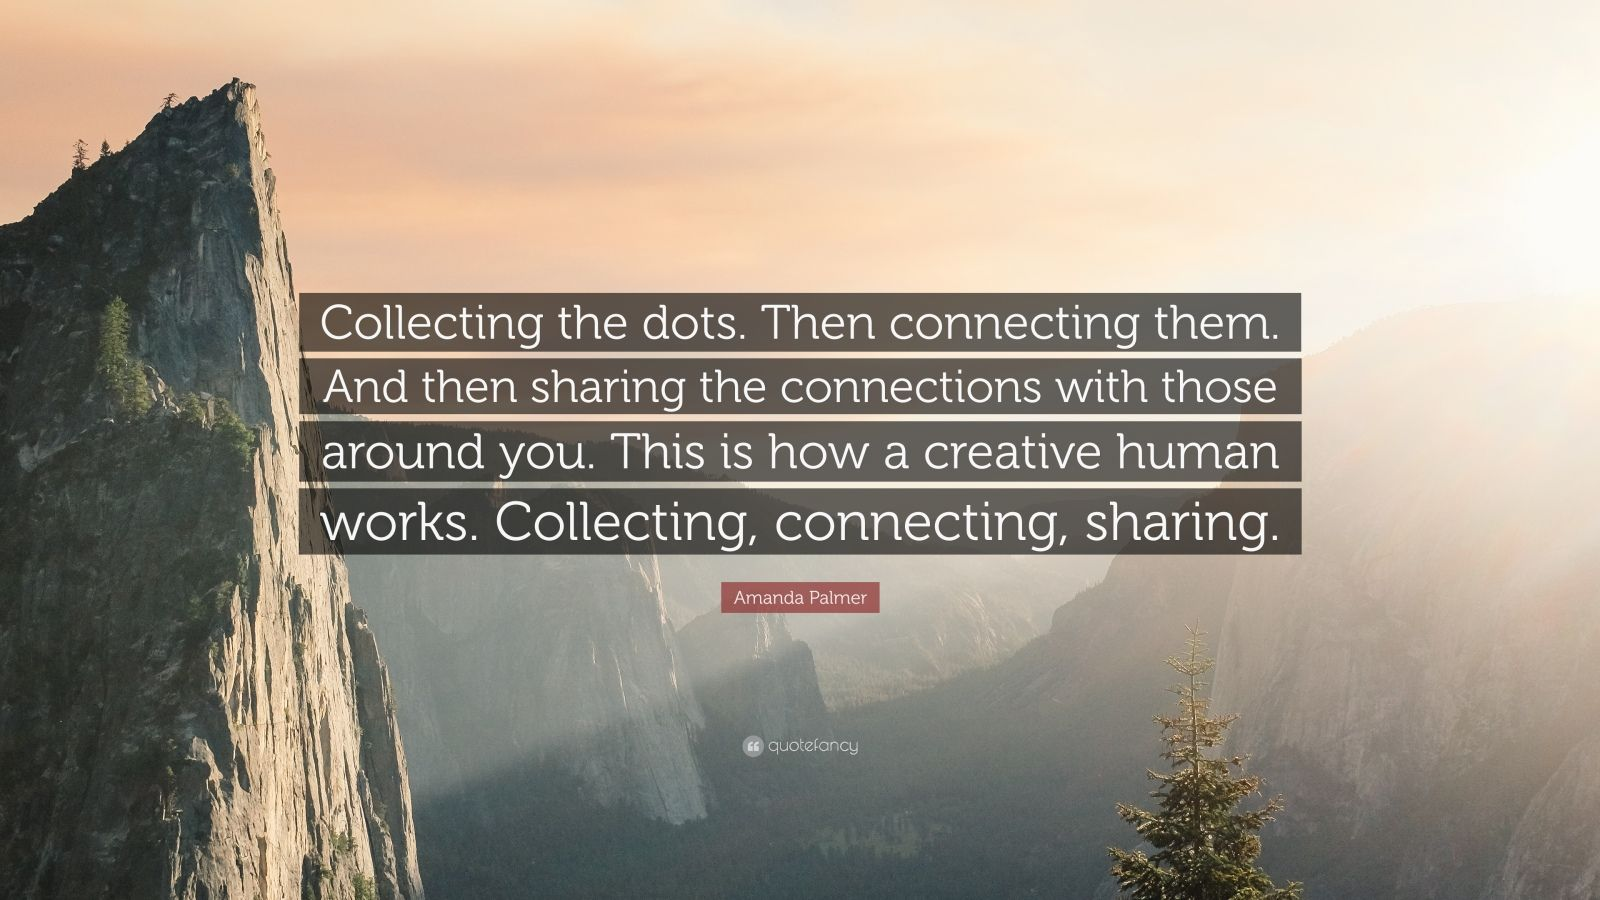 """Amanda Palmer Quote: """"Collecting the dots. Then connecting them. And then sharing the connections with those around you. This is how a creative human works. Collecting, connecting, sharing."""""""